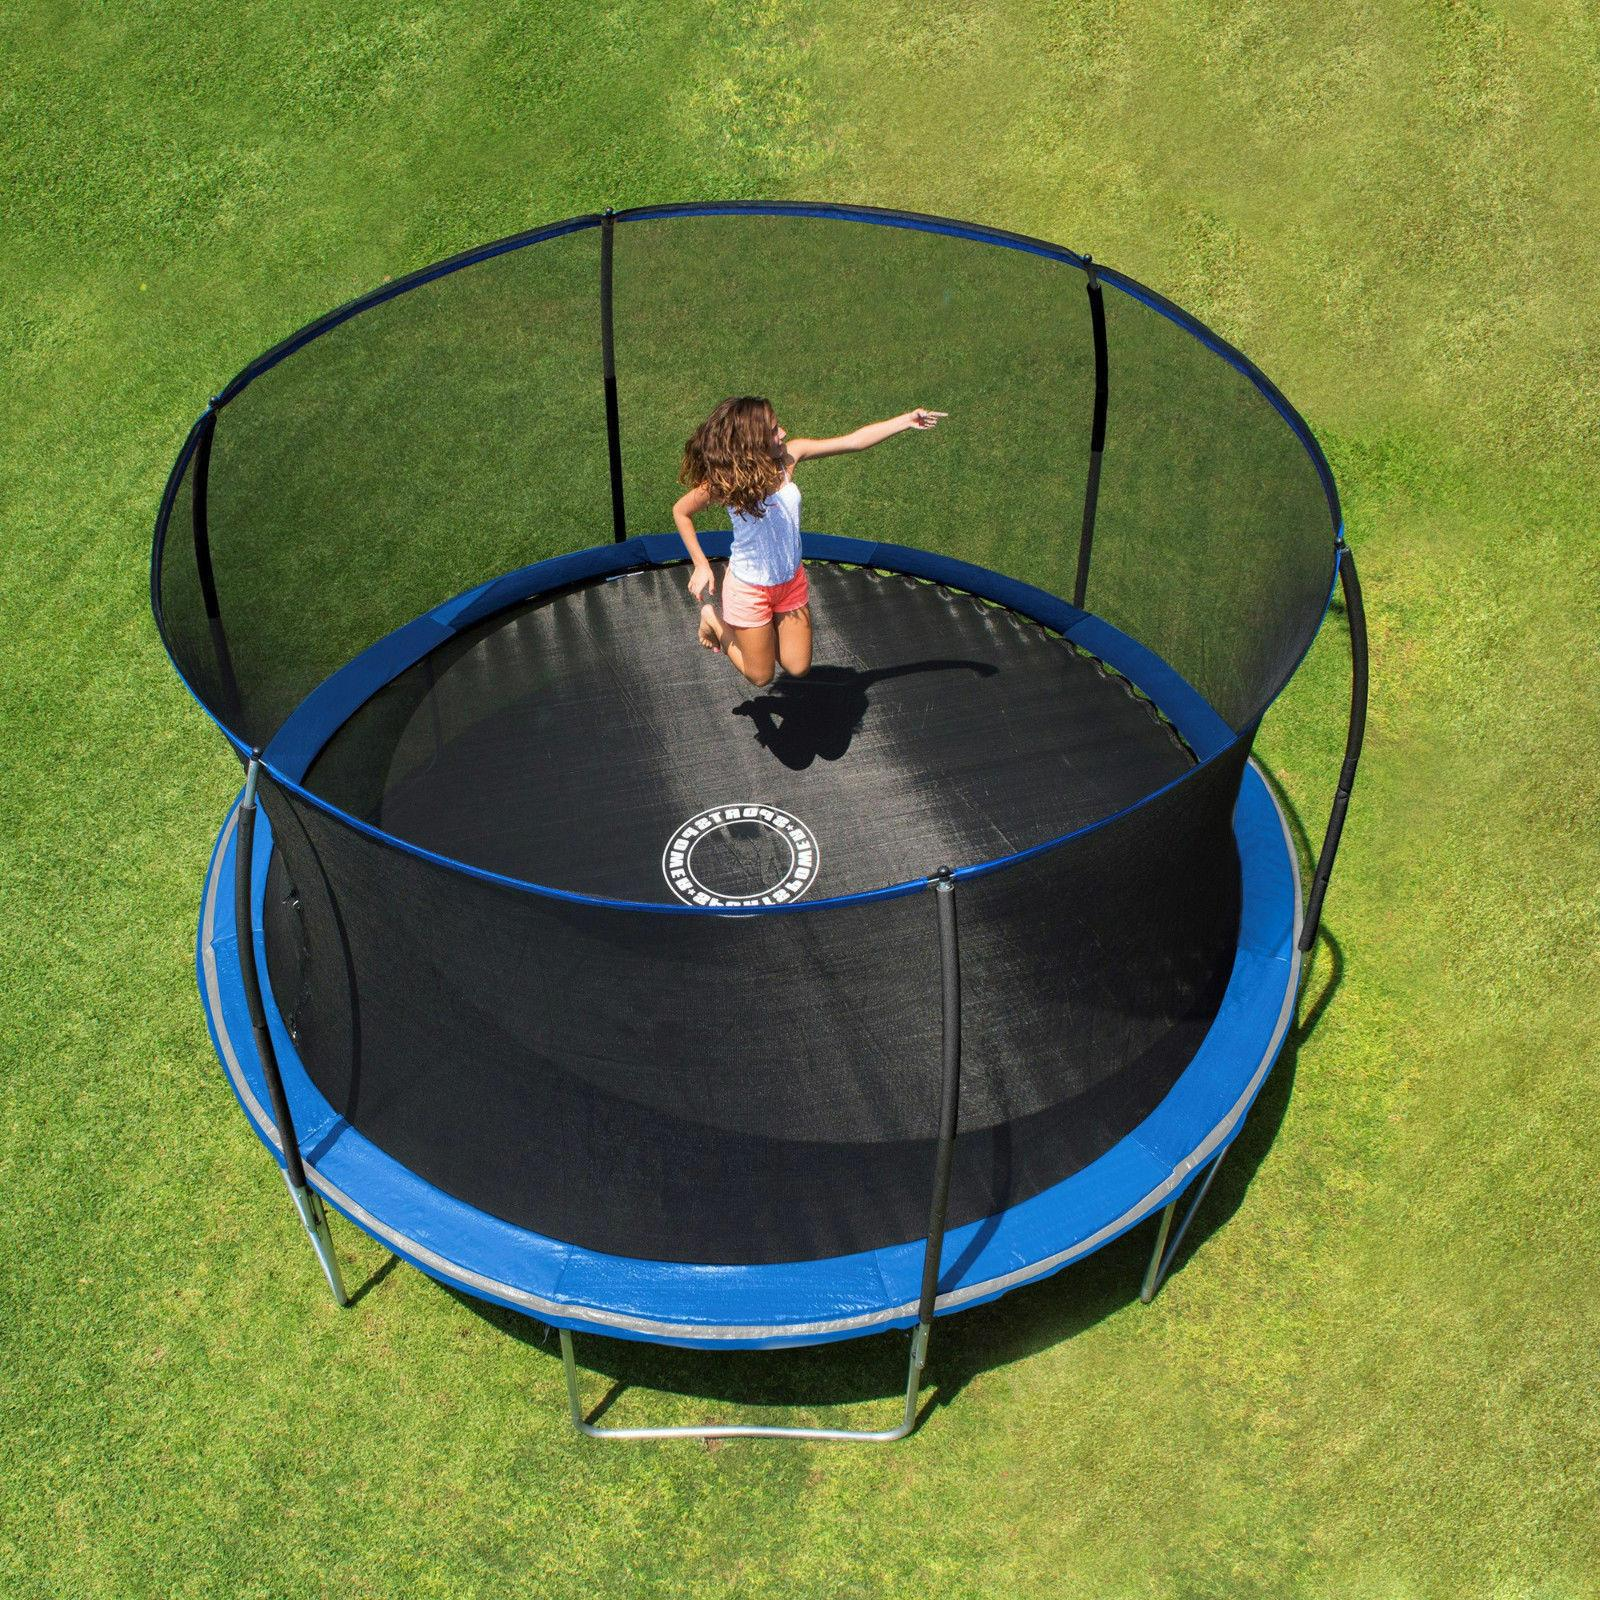 Bounce Pro 14' Trampoline, with Classic Enclosure, Blue ...